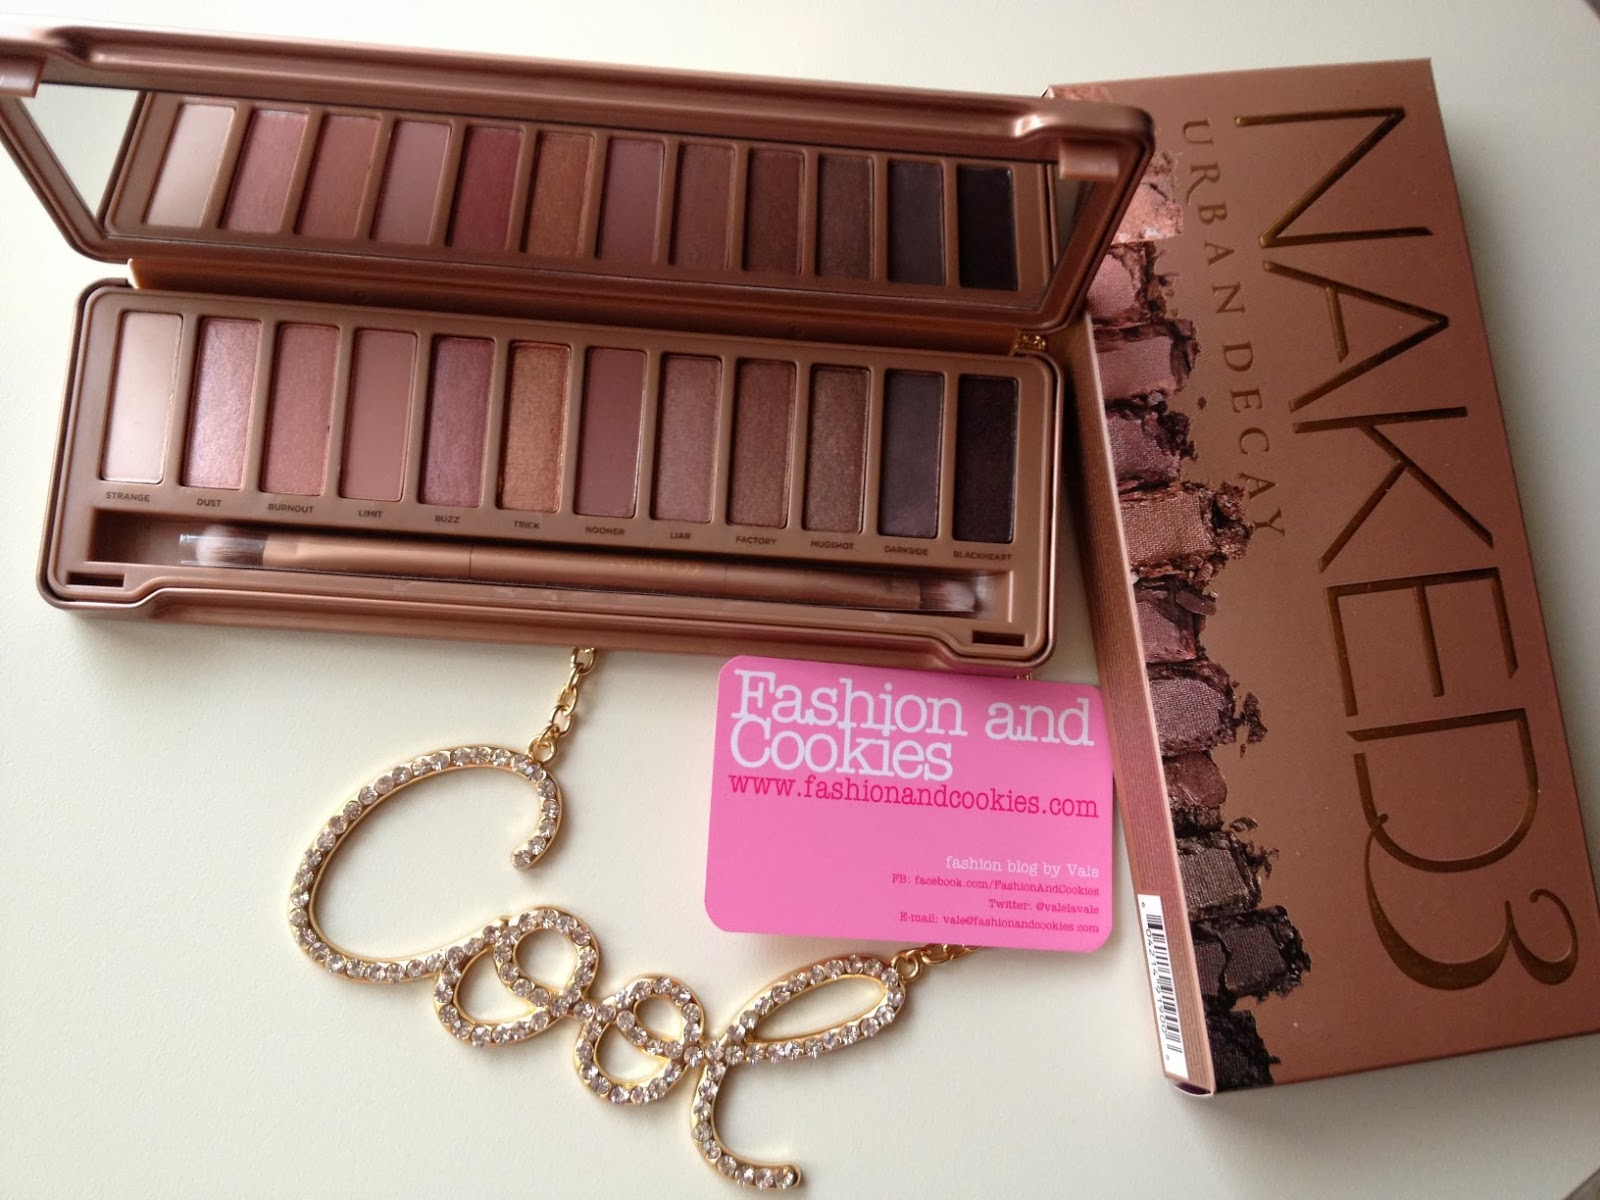 Naked 3 Urban Decay palette, fashion blogger, Fashion and Cookies